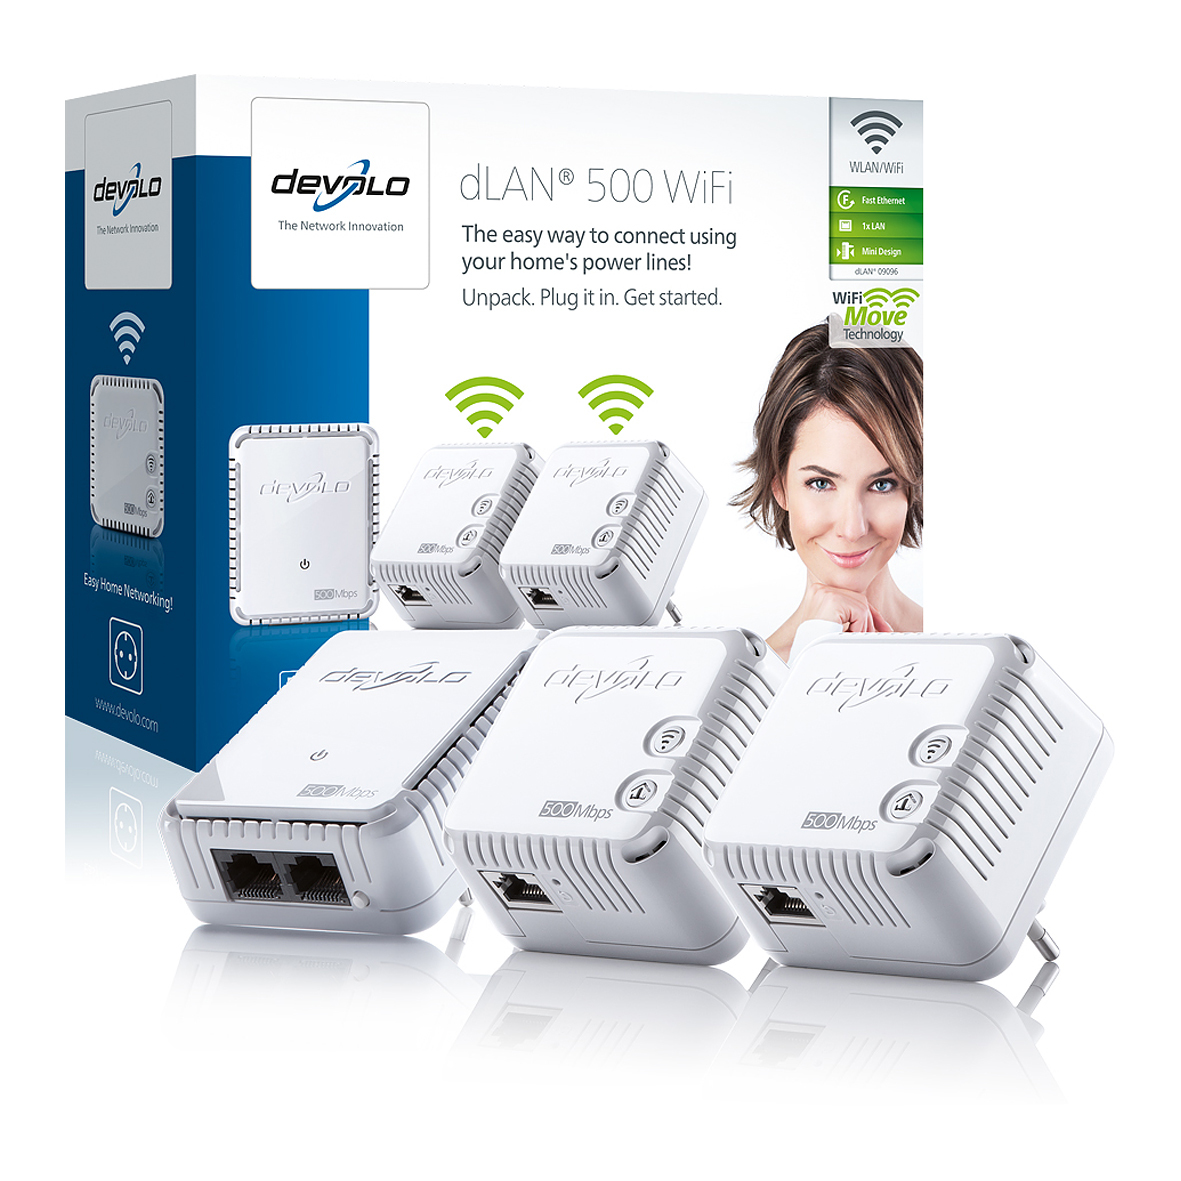 Powerline homeplug netwerkkit dLAN 500 met wifi